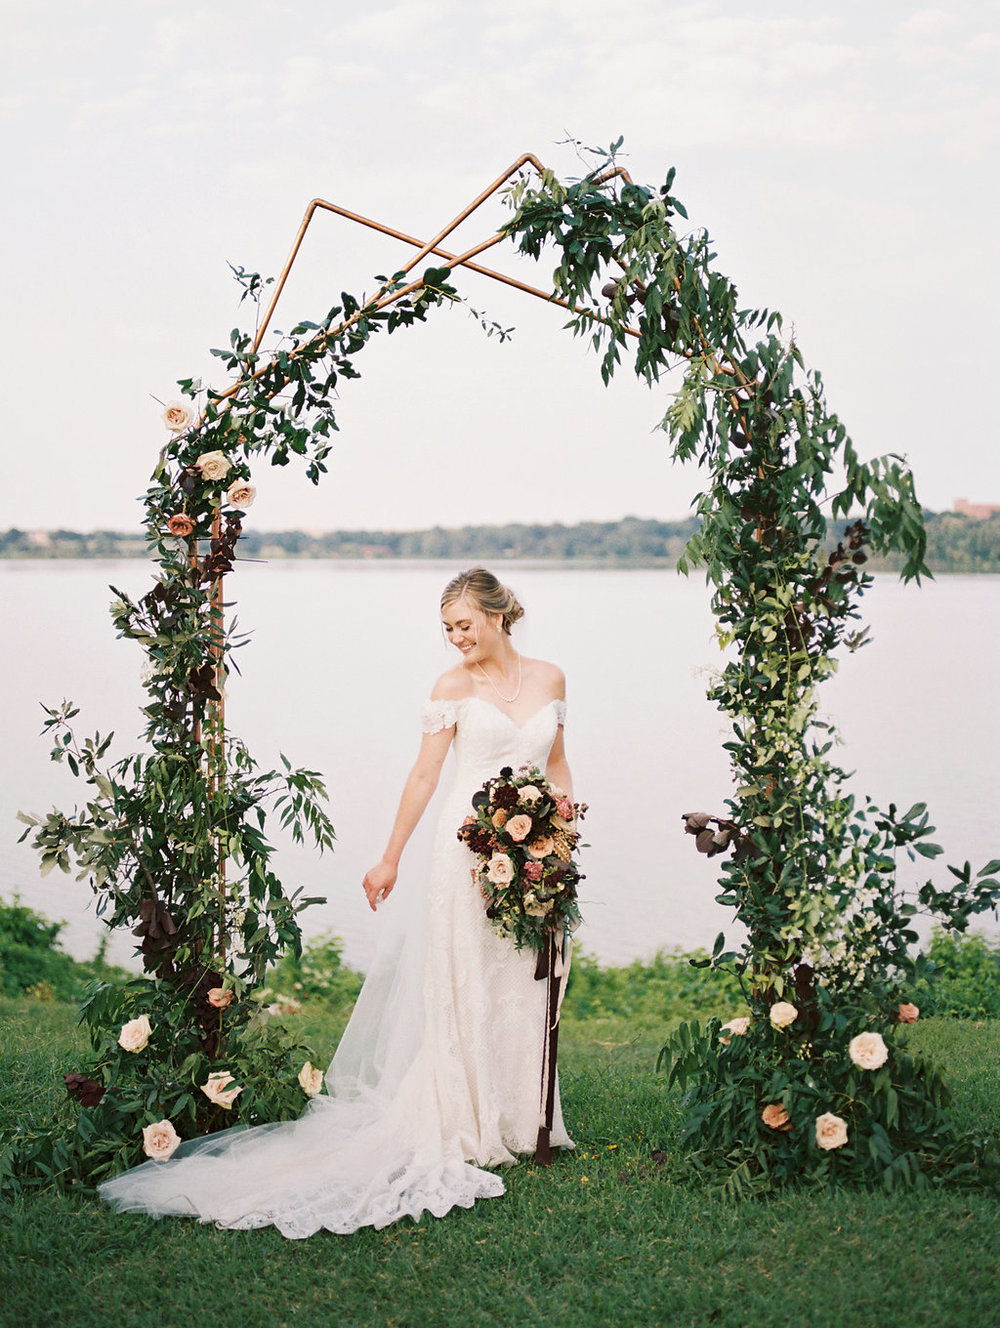 Minimalist Wedding Ceremony Decor - Dallas Wedding Flowers